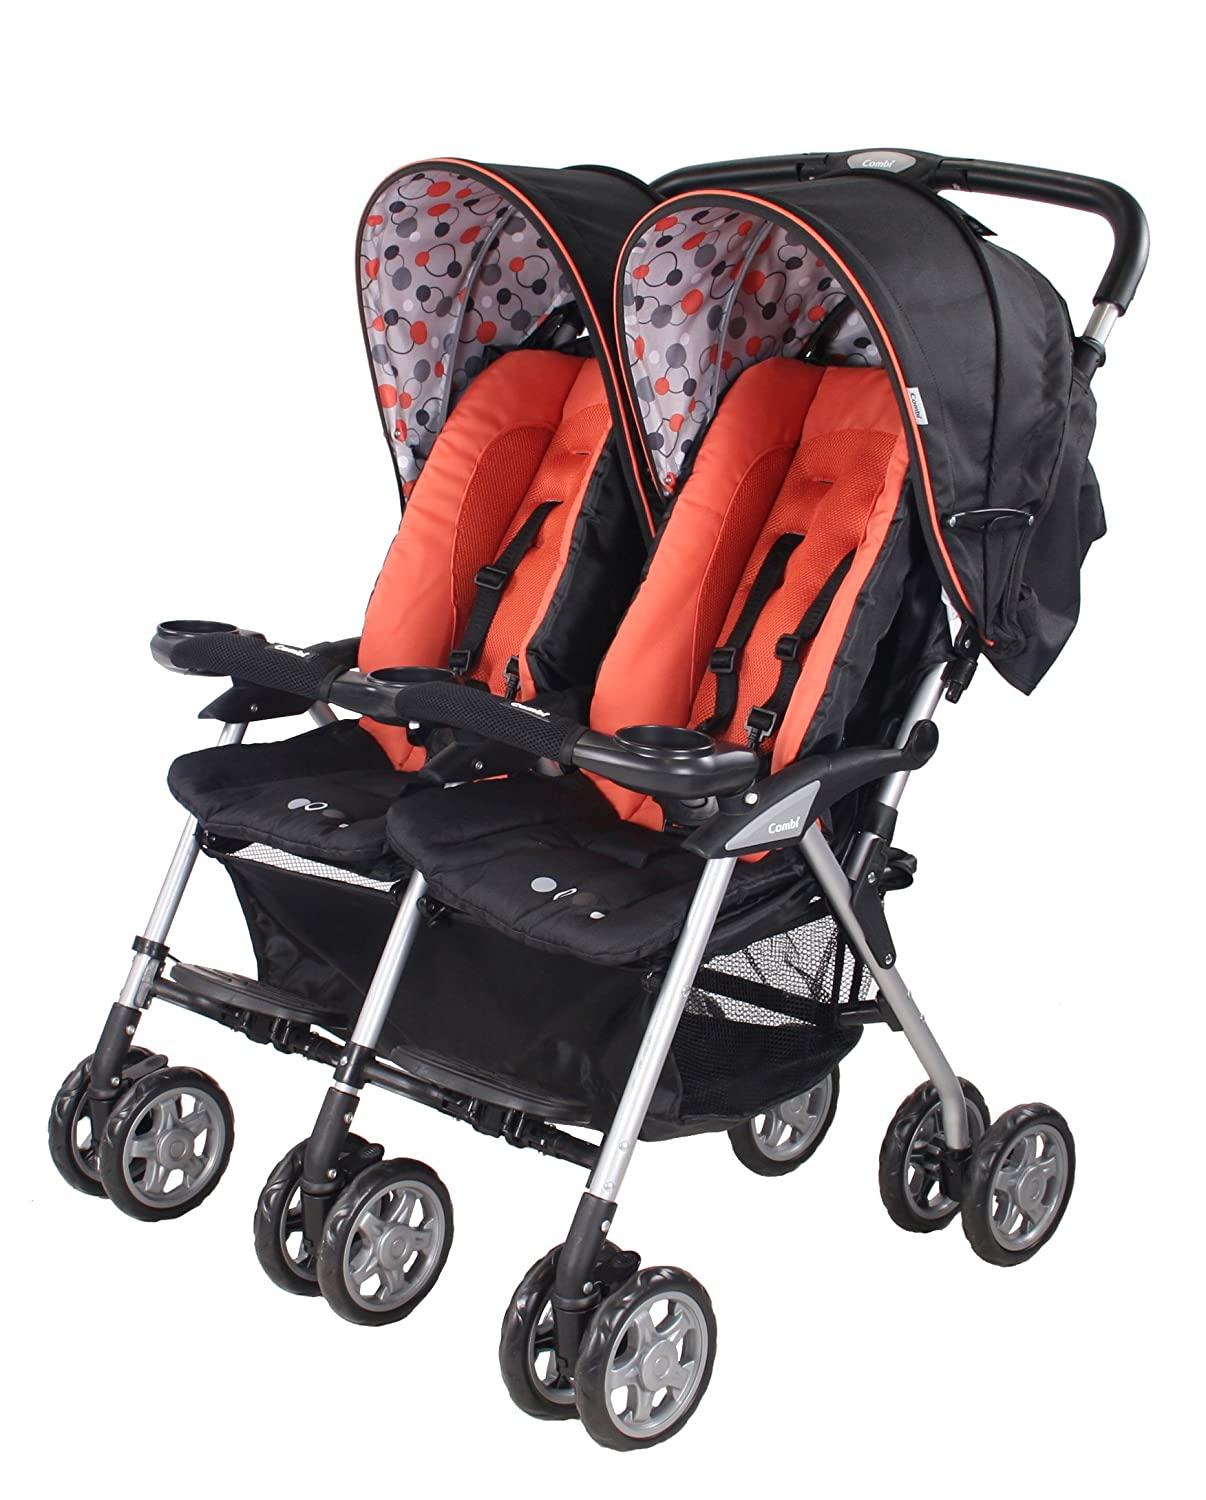 amazoncom combi twin sport  side by side double stroller  - amazoncom combi twin sport  side by side double stroller  apricot(discontinued by manufacturer) baby